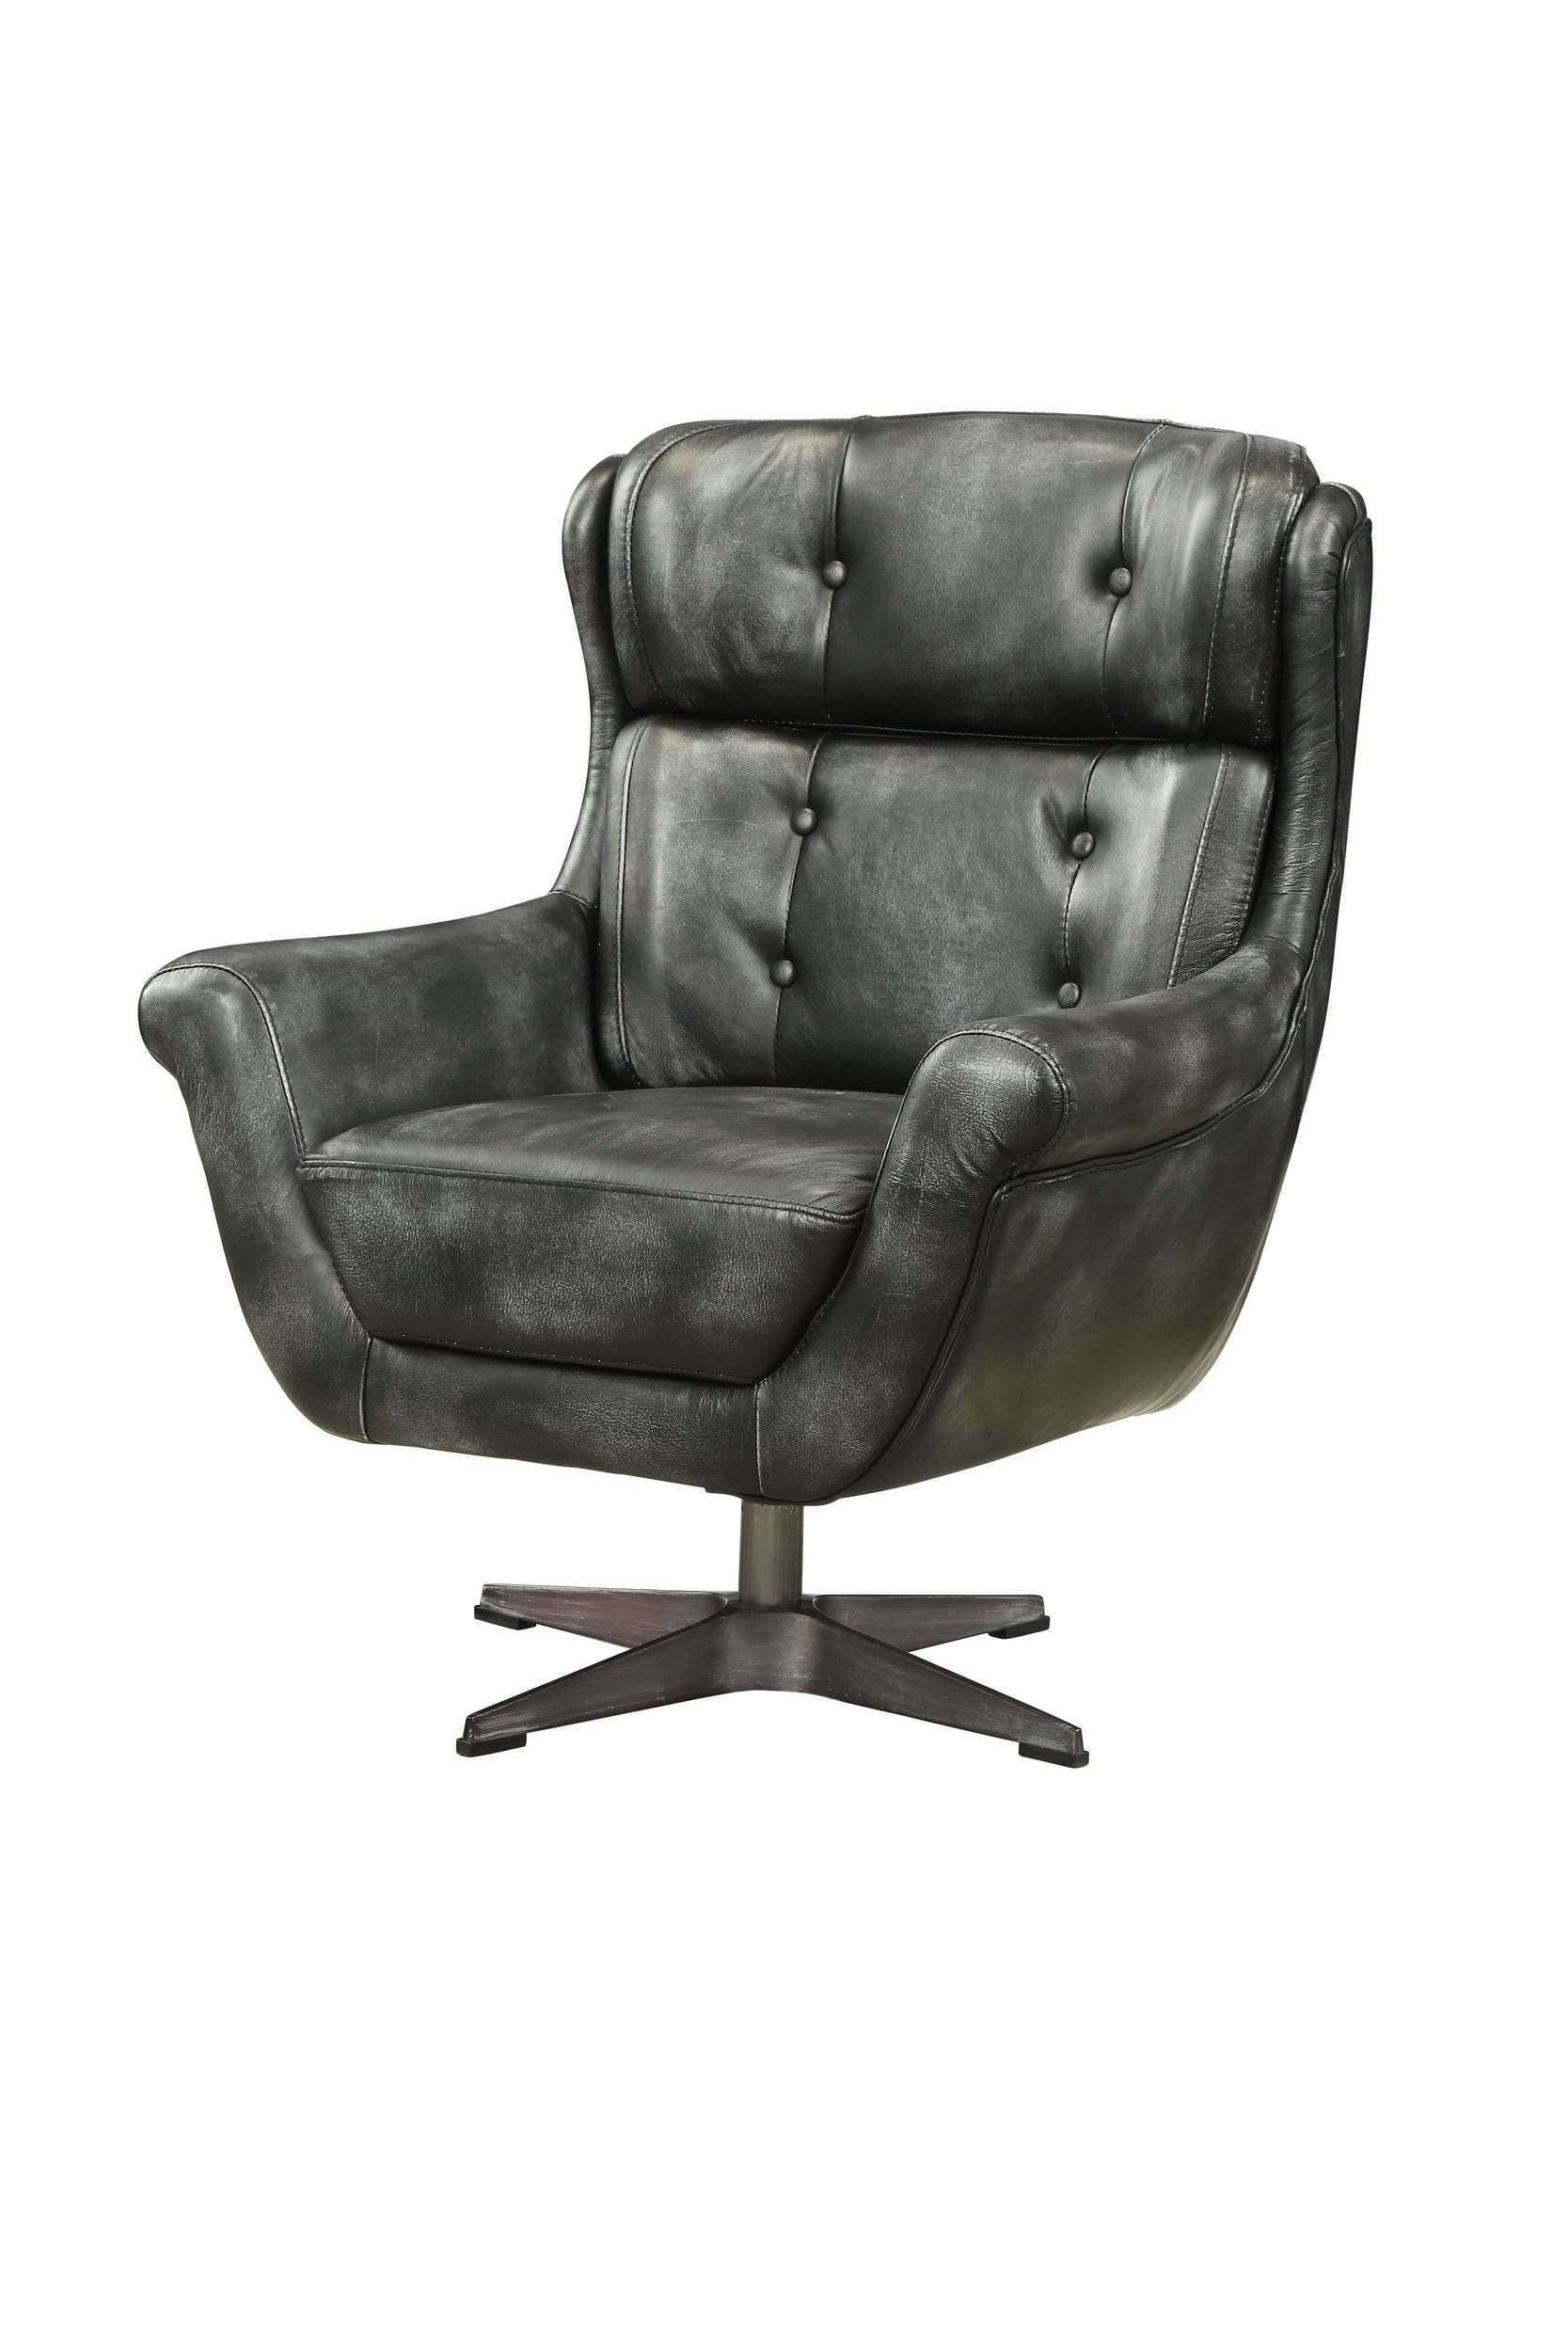 Miraculous Acme Furniture Asotin Vintage Black Top Grain Leather Accent Chair Reviews Goedekers Com Gmtry Best Dining Table And Chair Ideas Images Gmtryco